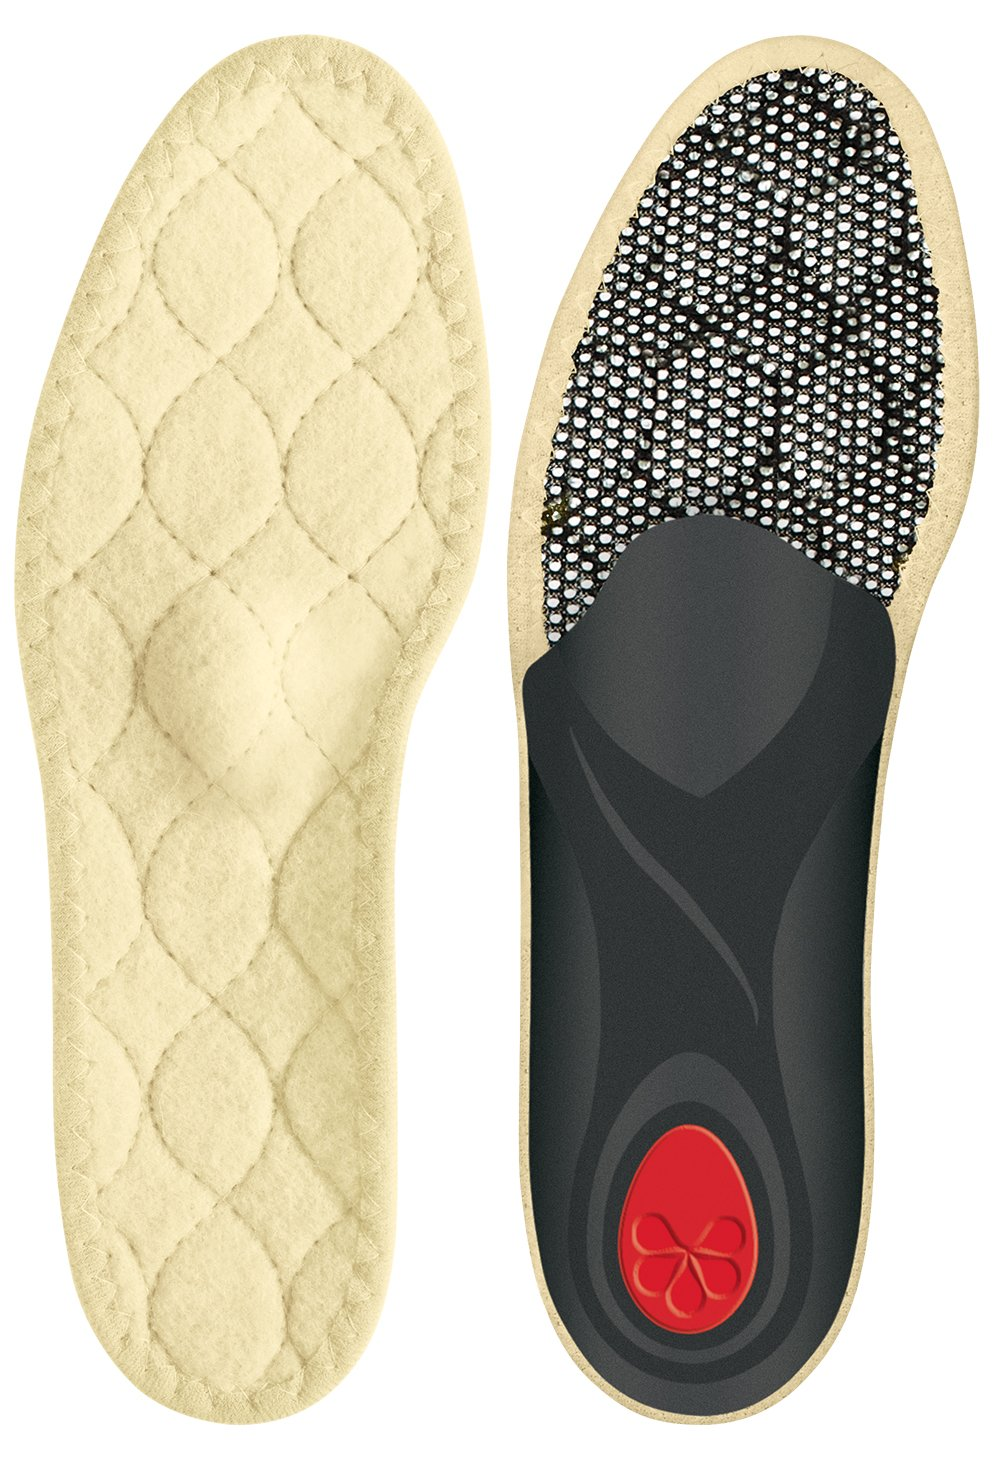 Pedag Viva Winter (Solar Plus) with Effective Insulation and Arch Support, Metatarsal and Heel Pad, Women's 9